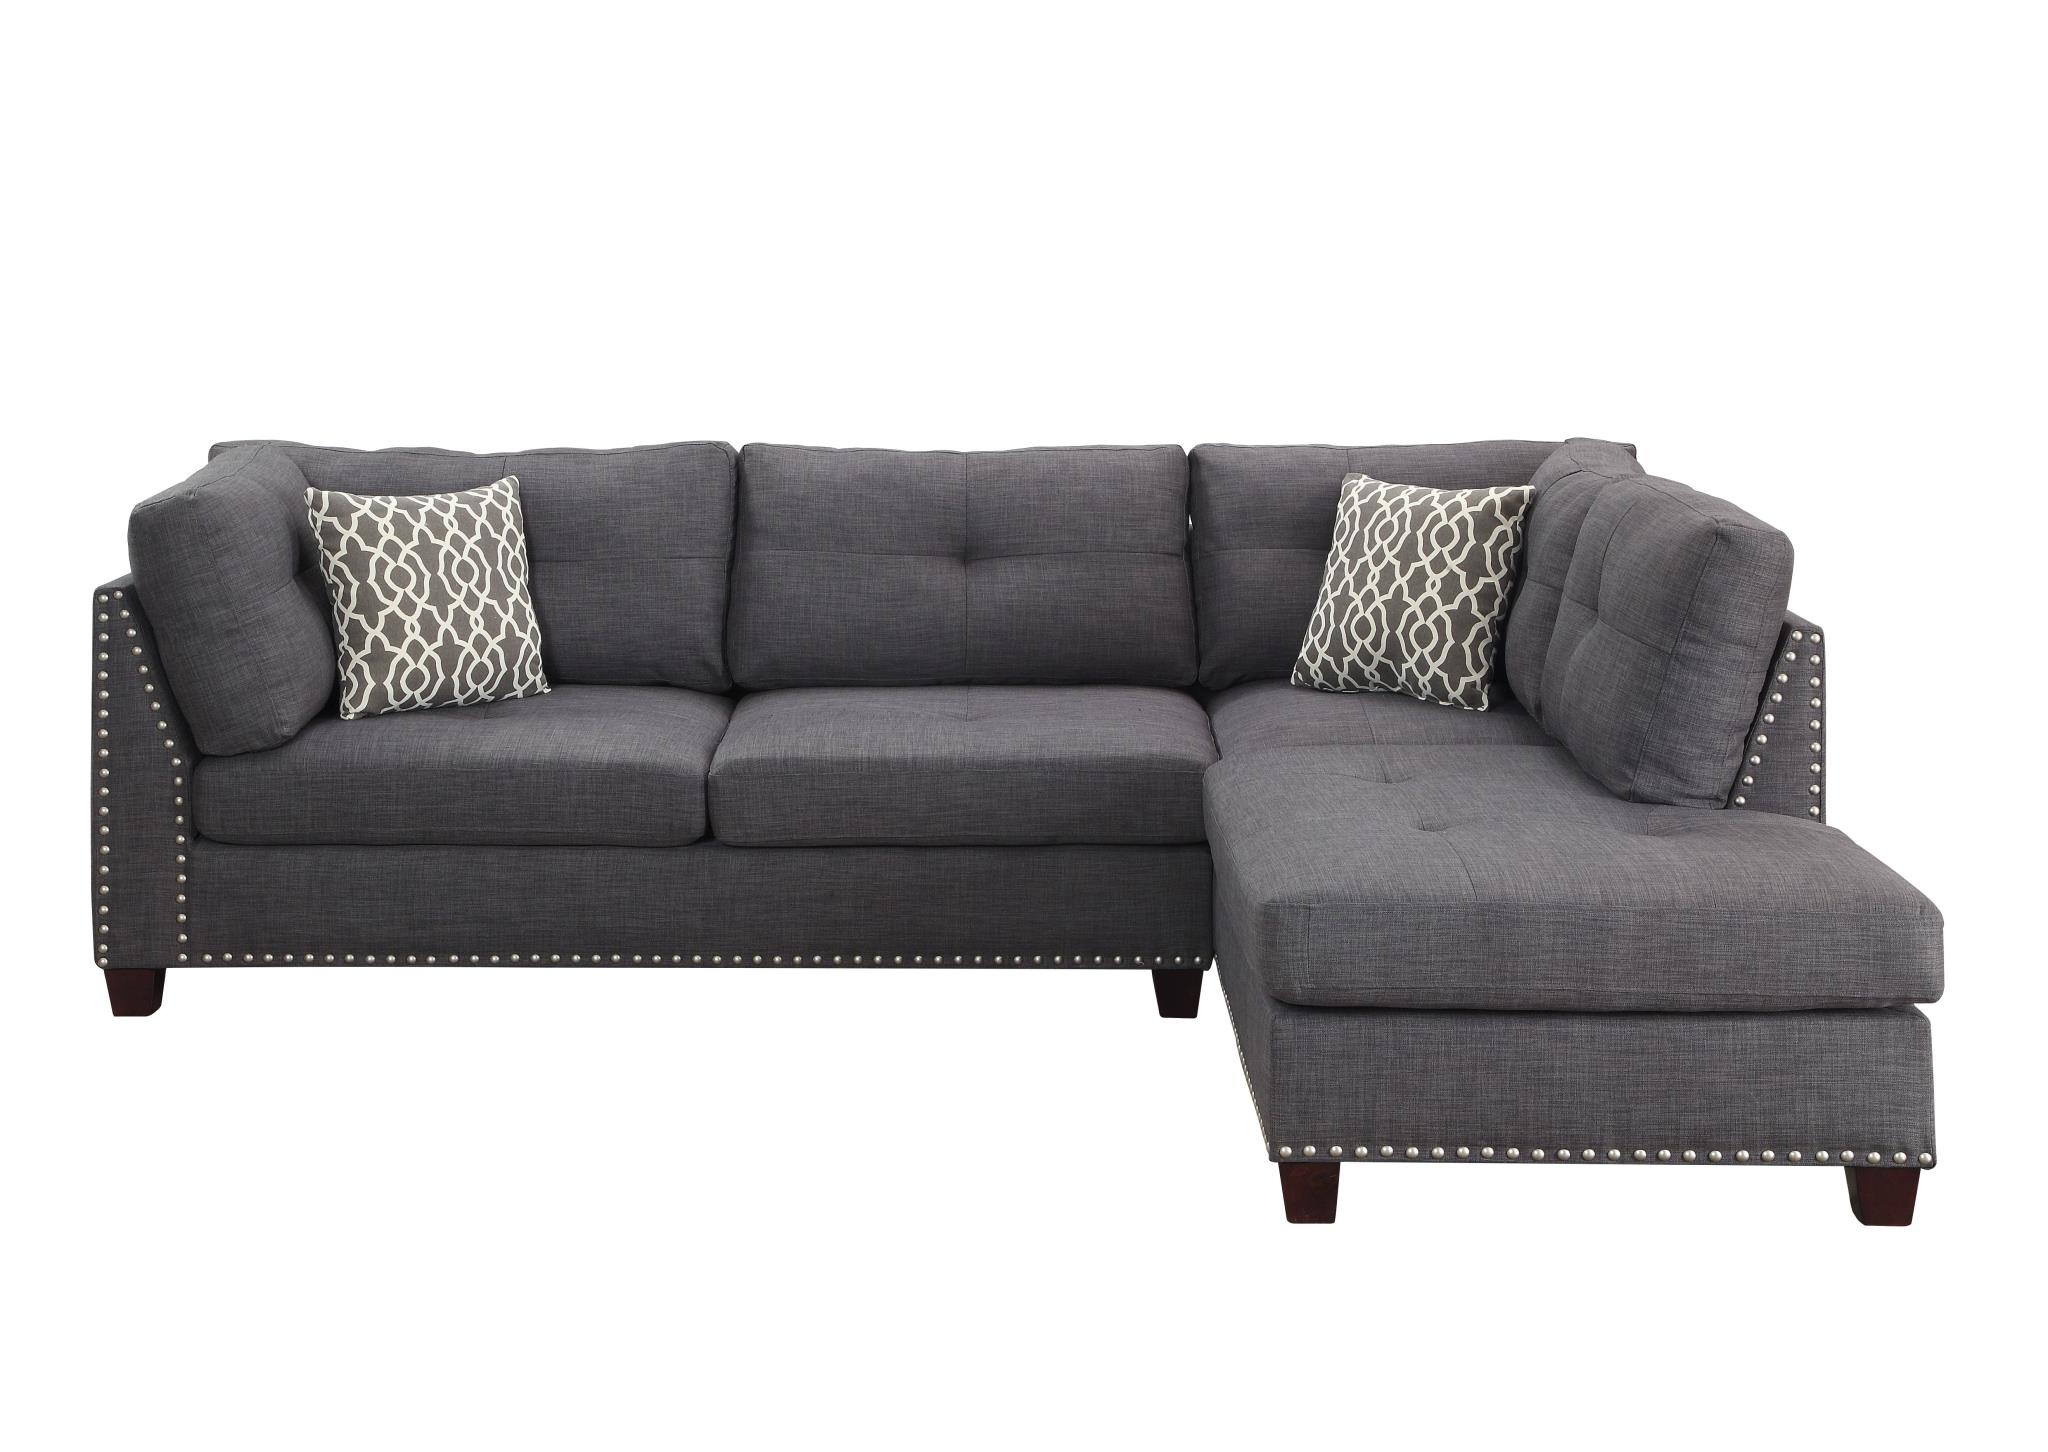 Sectional Sofa w/ Right Facing Chaise Front